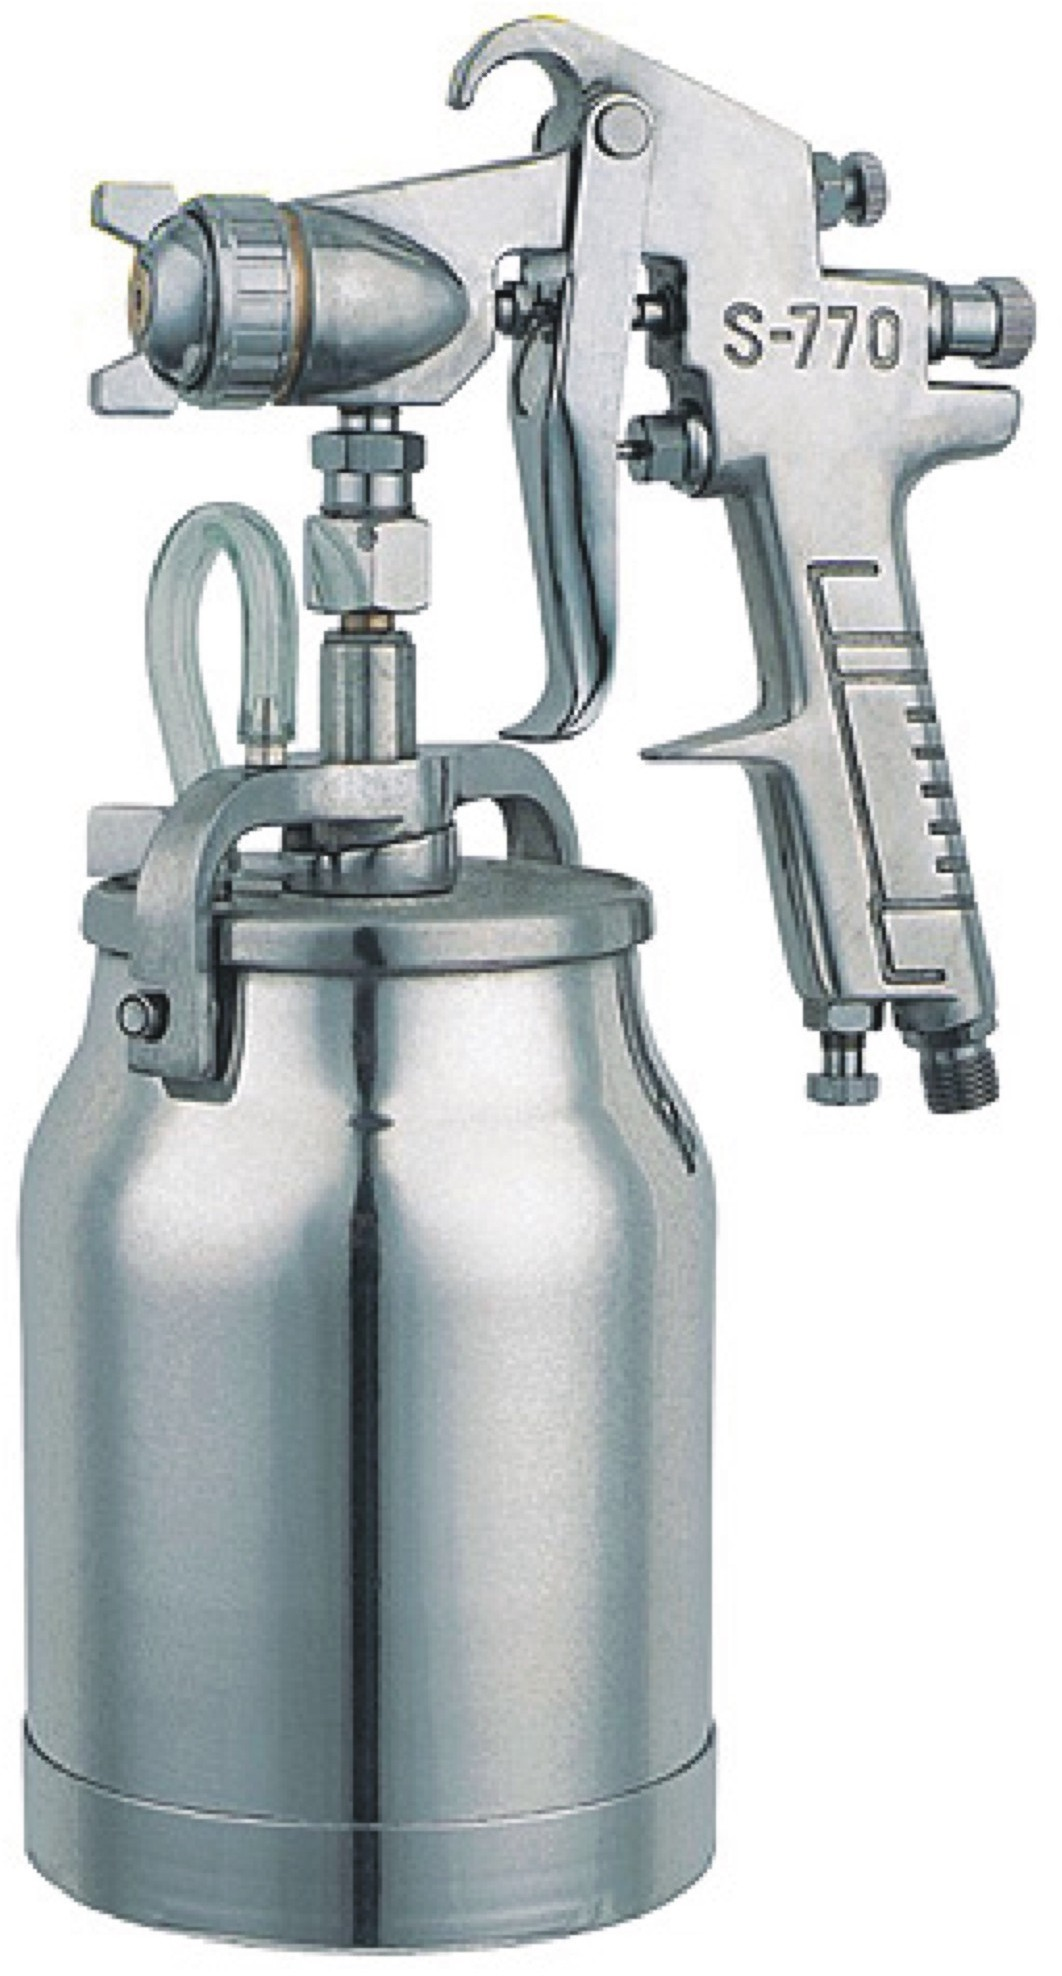 Spray gun suction feed gravity feed for Spray gun for oil based paints